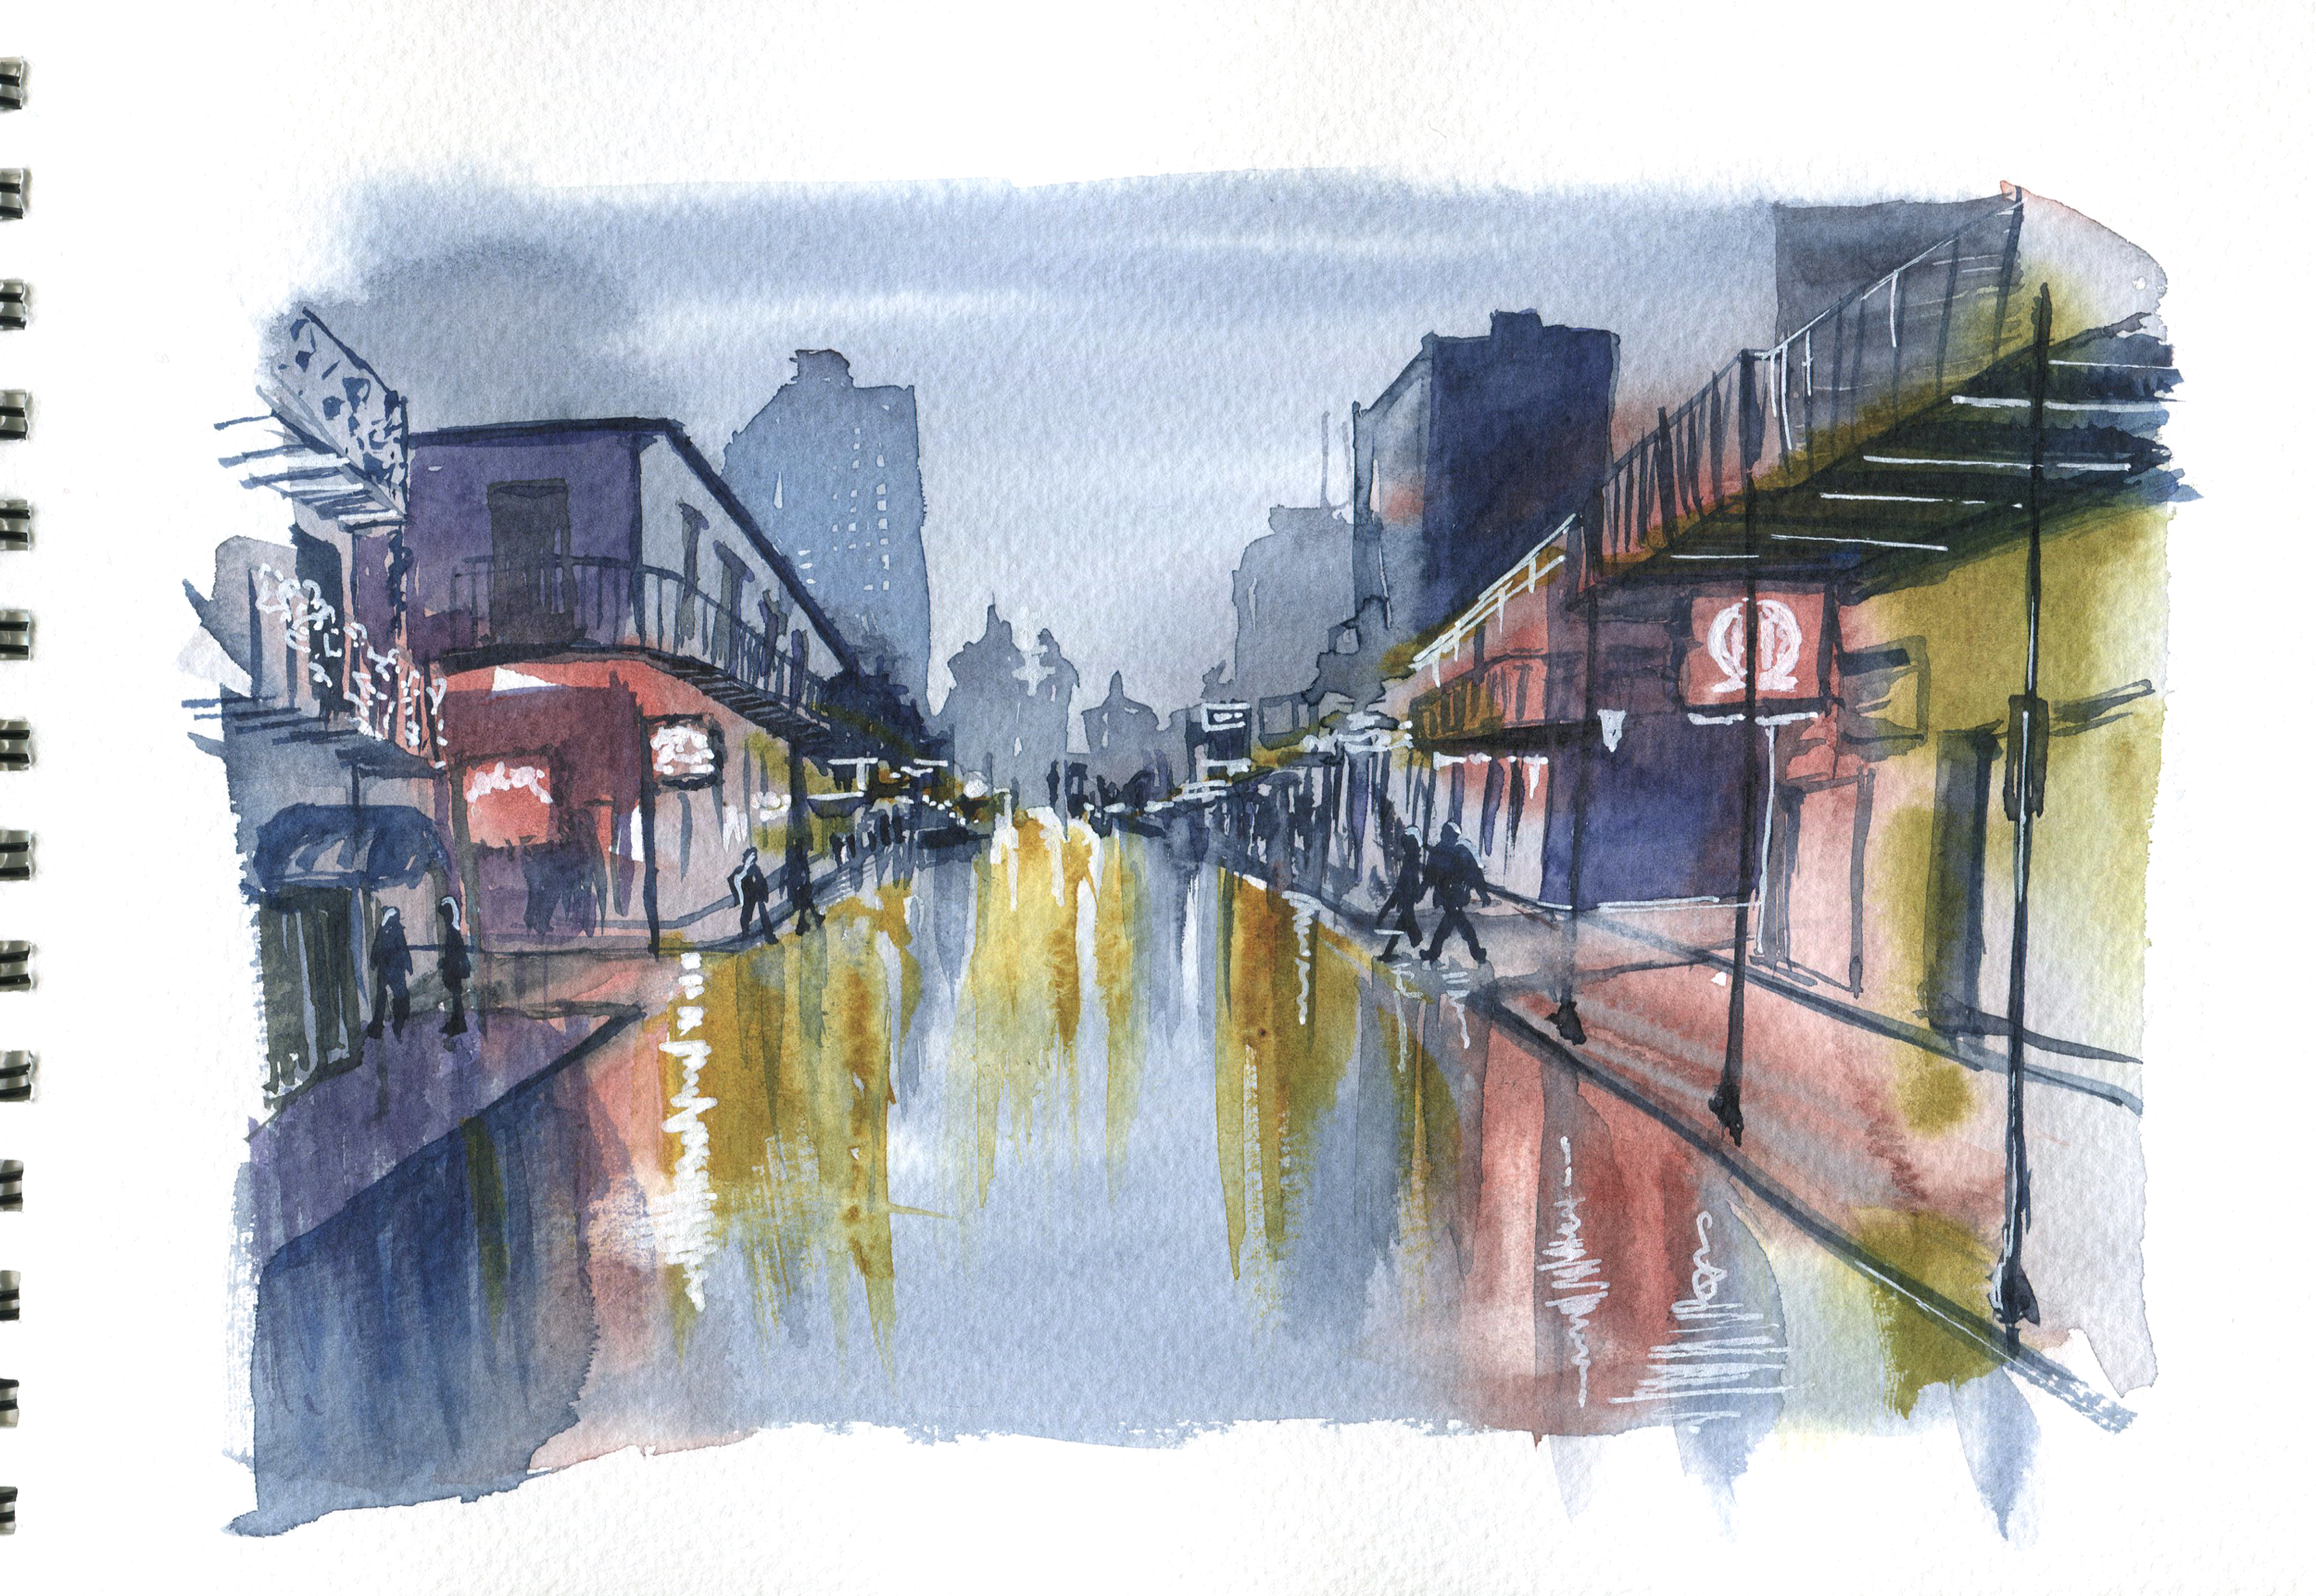 rainy night in watercolor